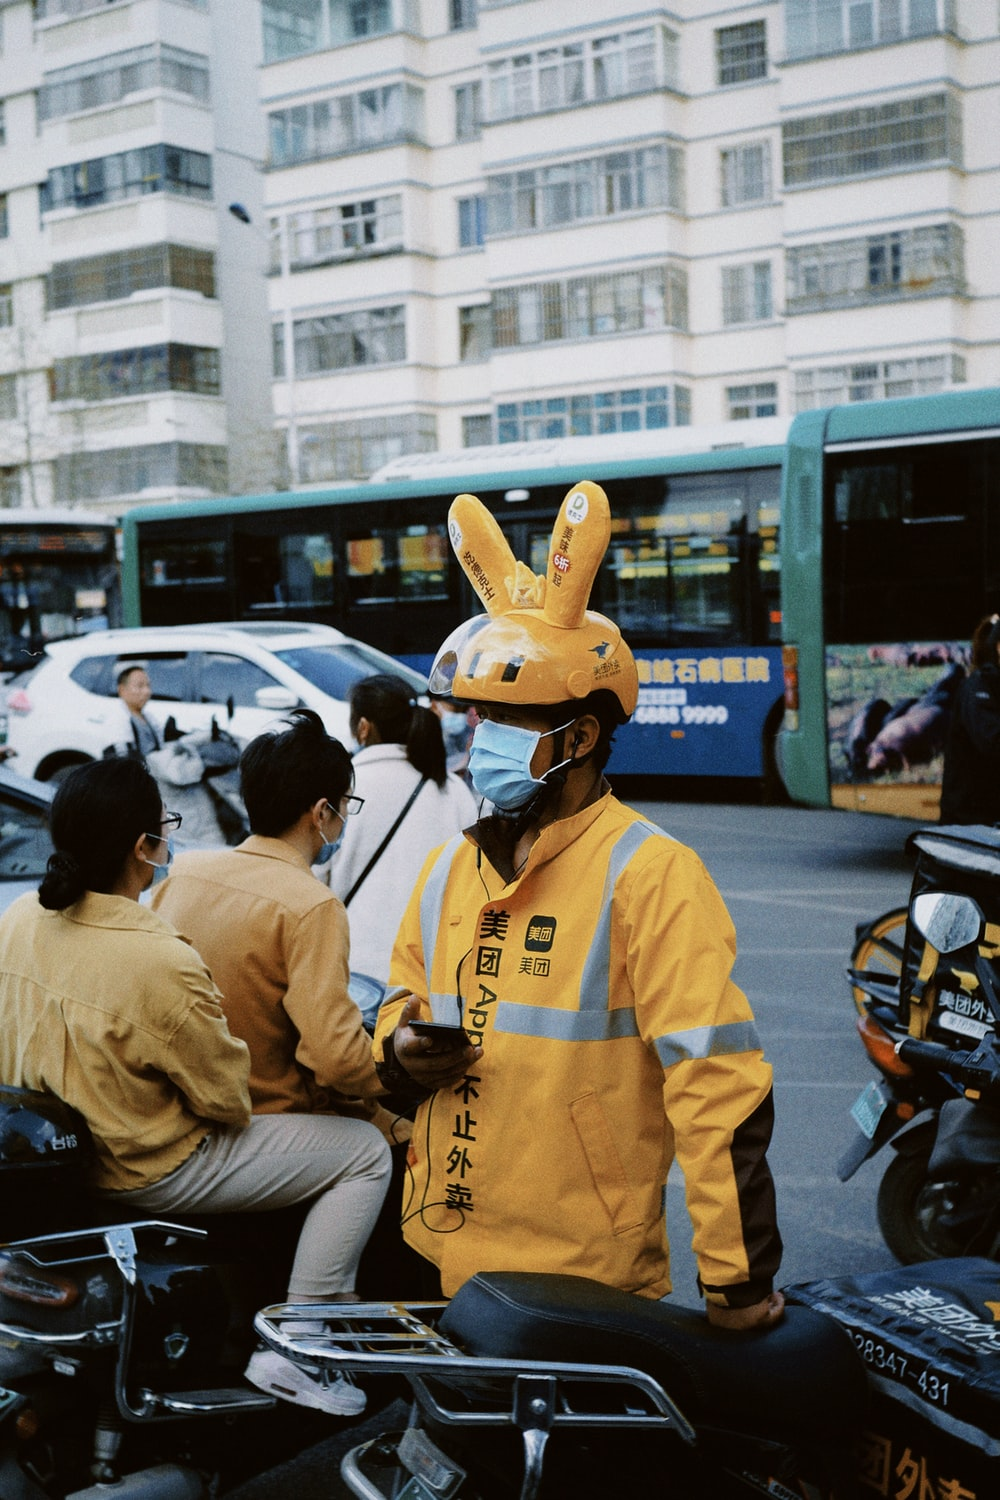 people in yellow and white uniform riding motorcycle during daytime